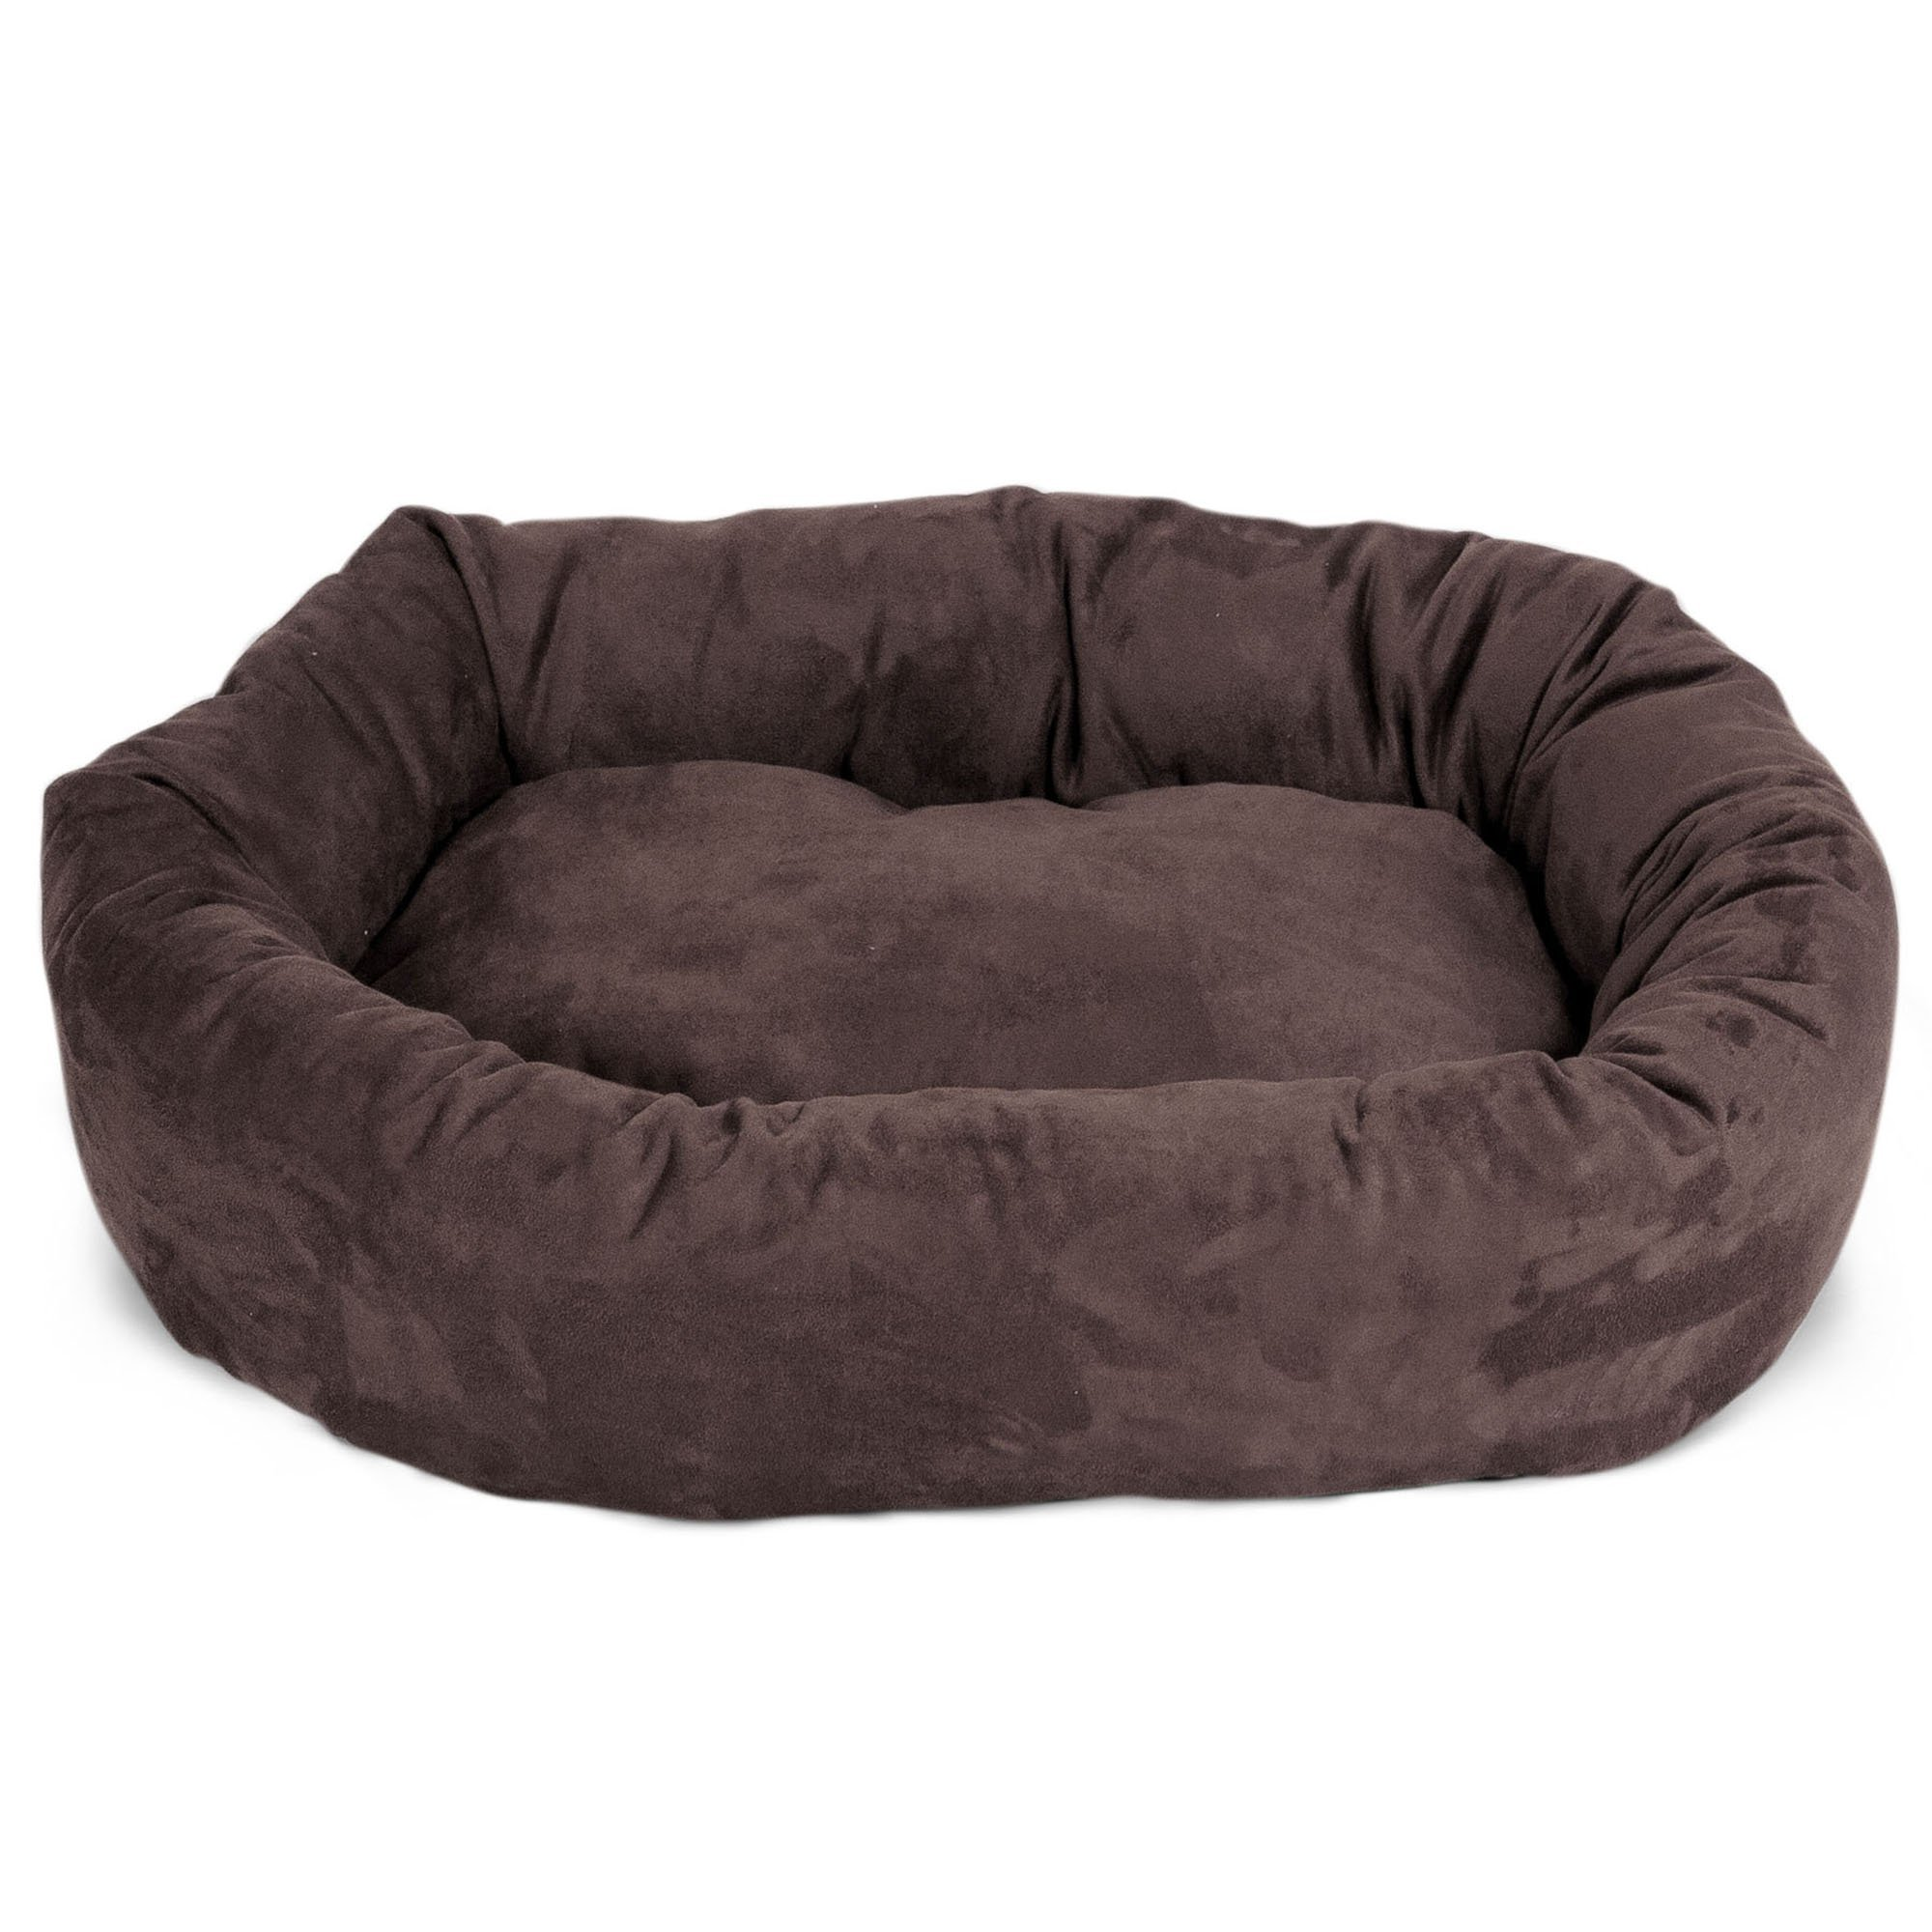 Majestic Pet 40 inch Chocolate Suede Bagel Dog Bed By Products